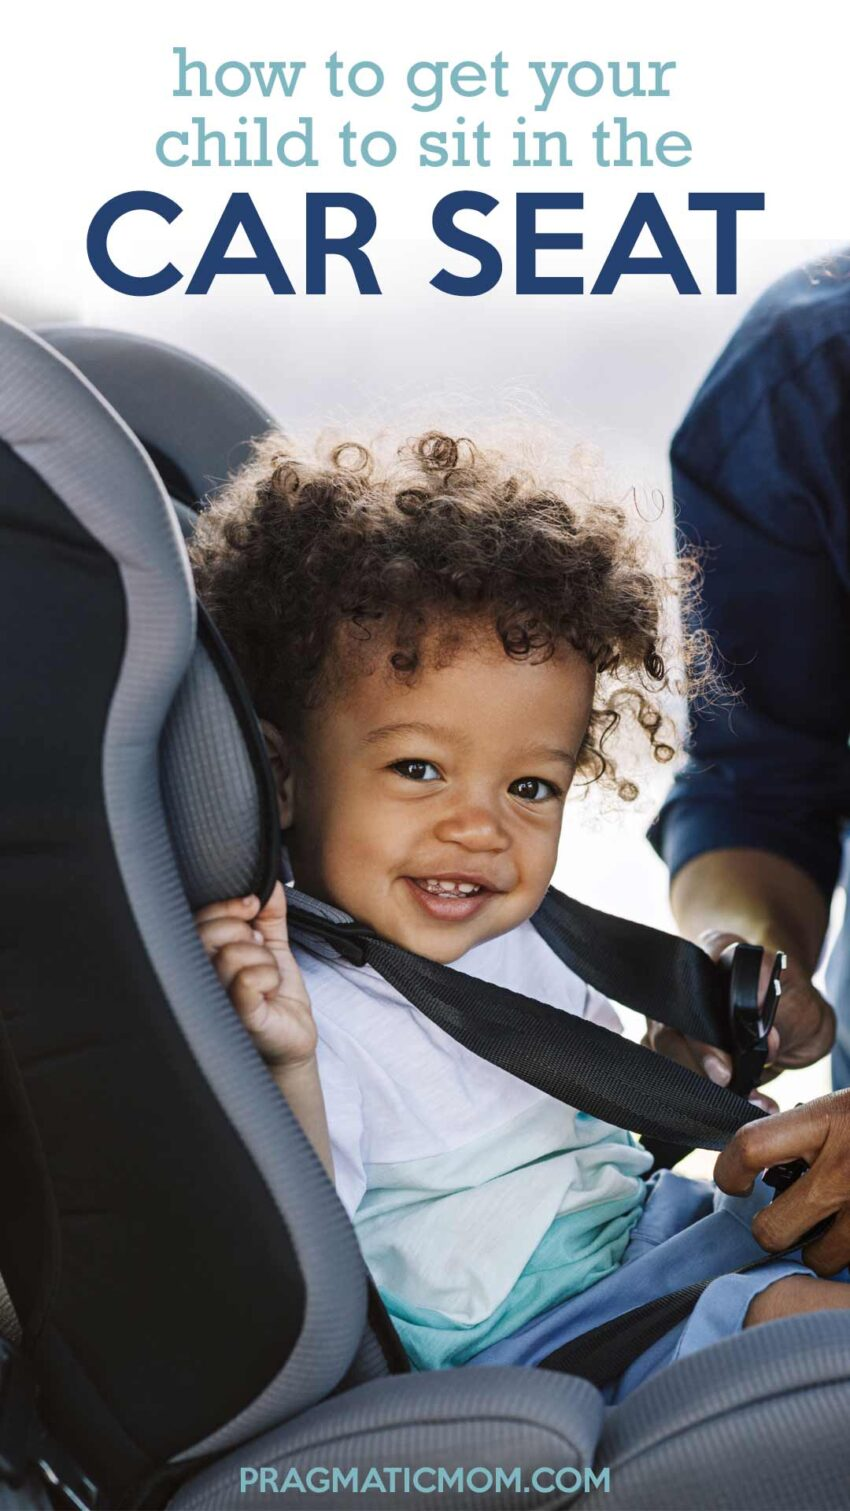 How to Get Your Child to Sit in a Car Seat